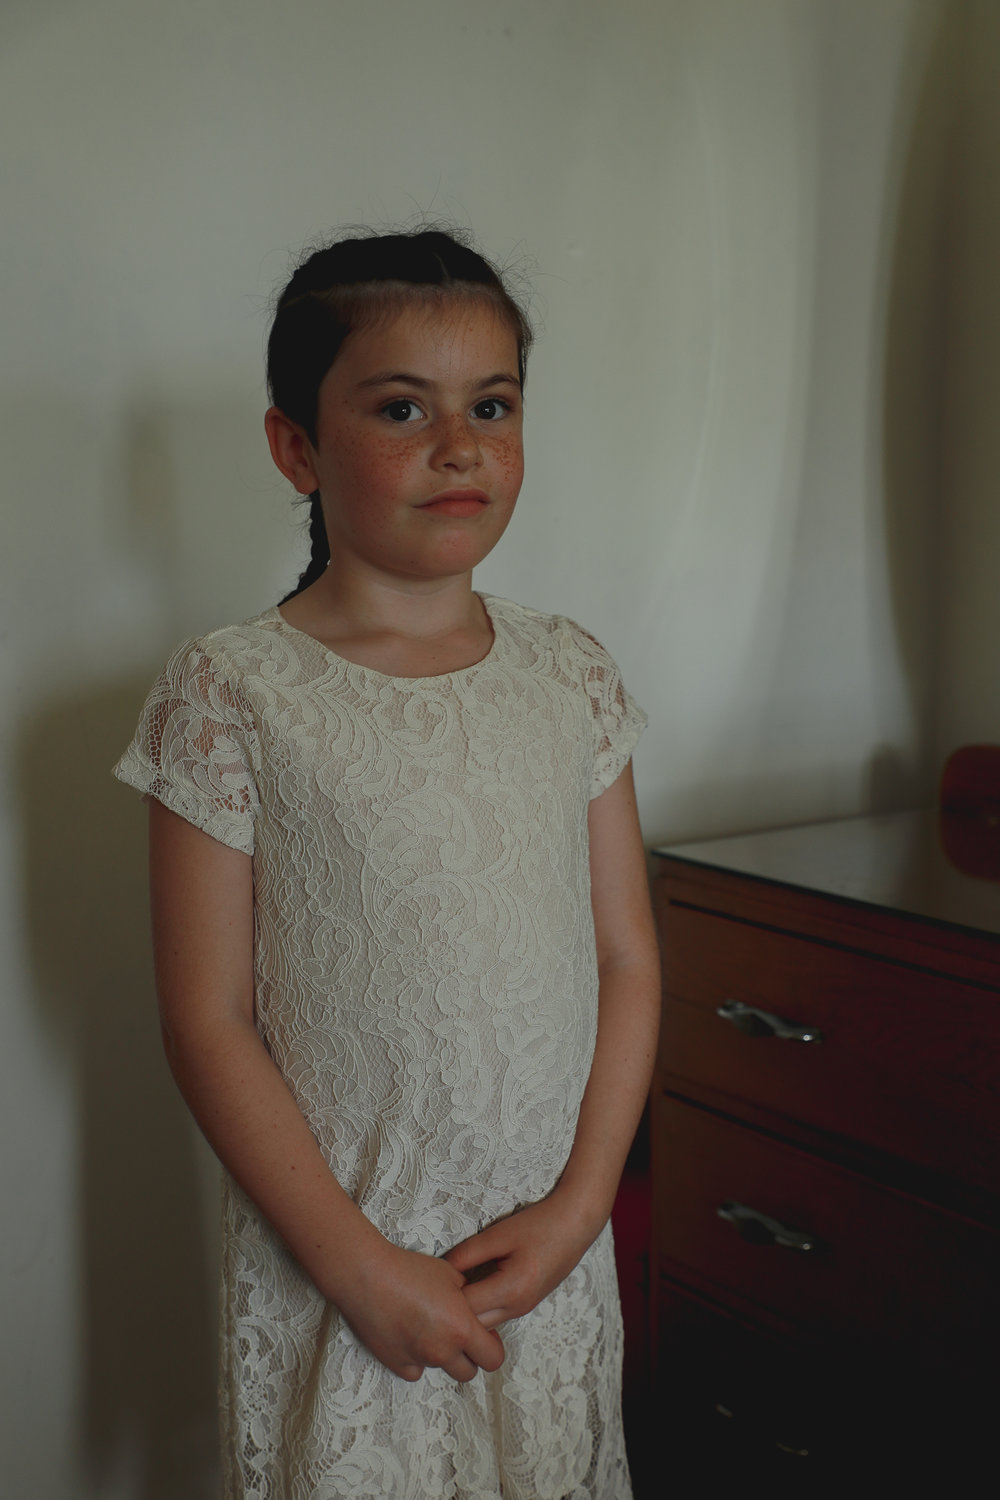 wedding-photography-flower-girl-trying-on-dress.jpg